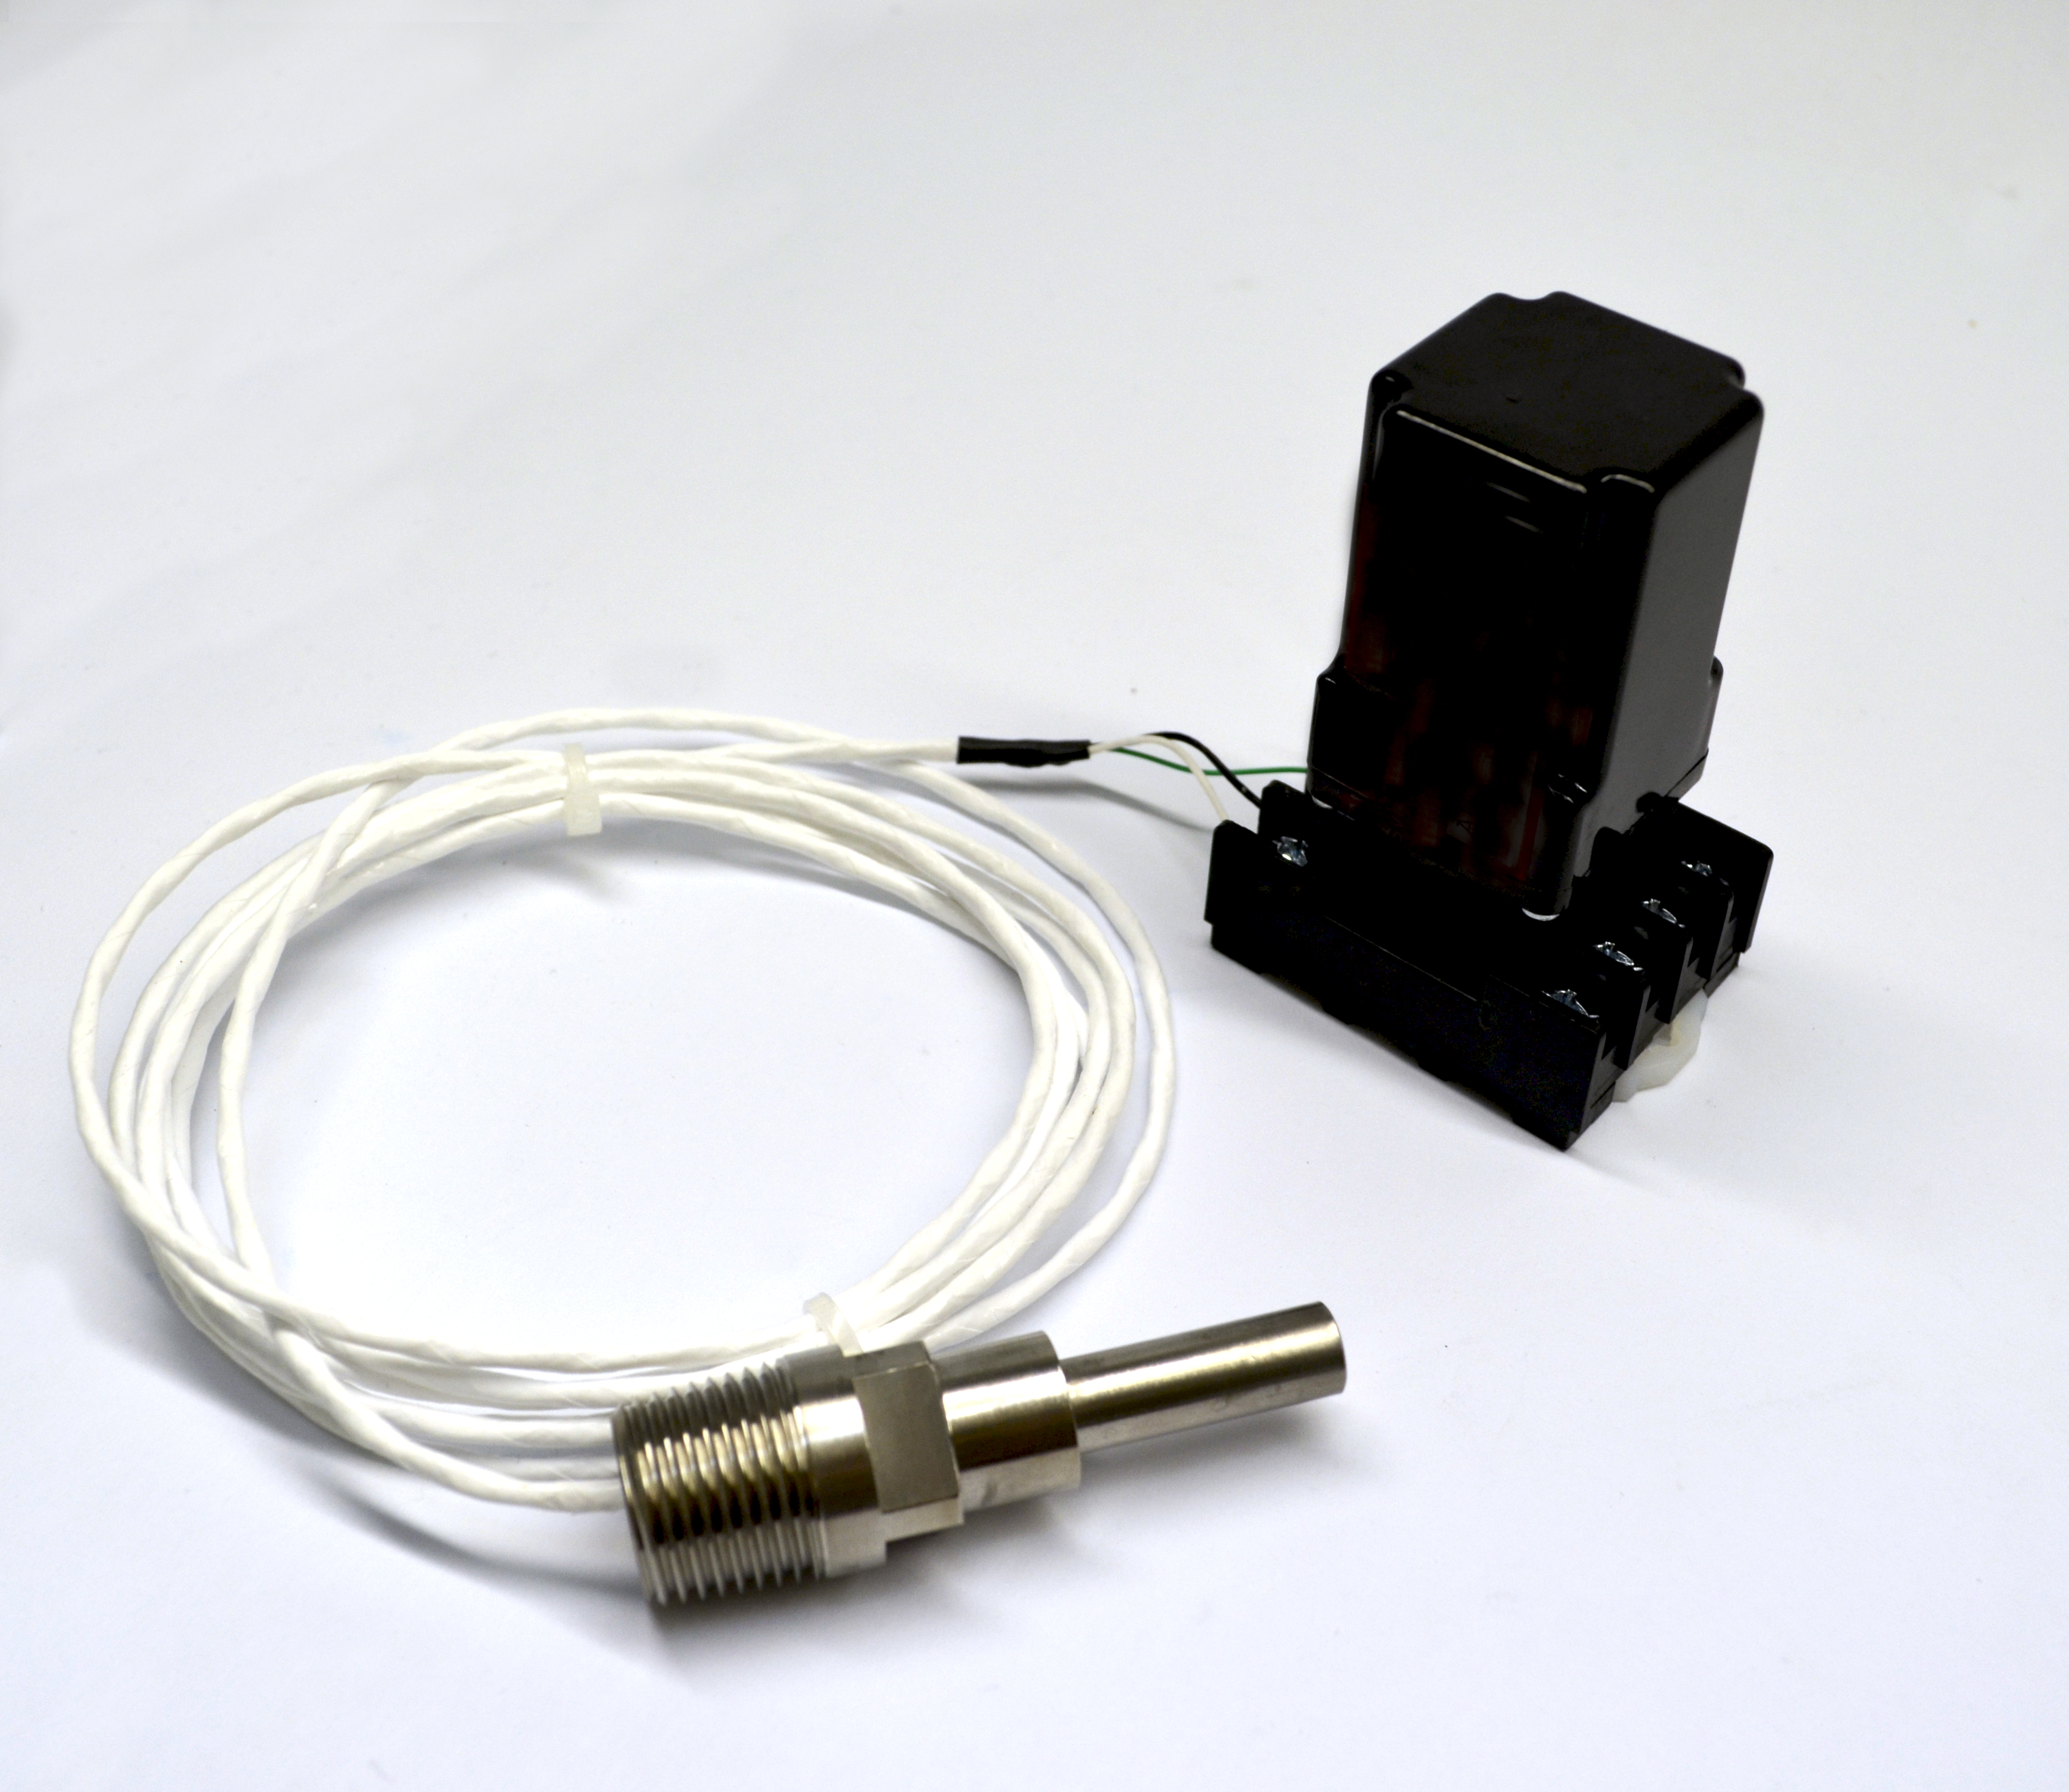 CAPM-15 High Temperature Sensor System - AW-Lake Company